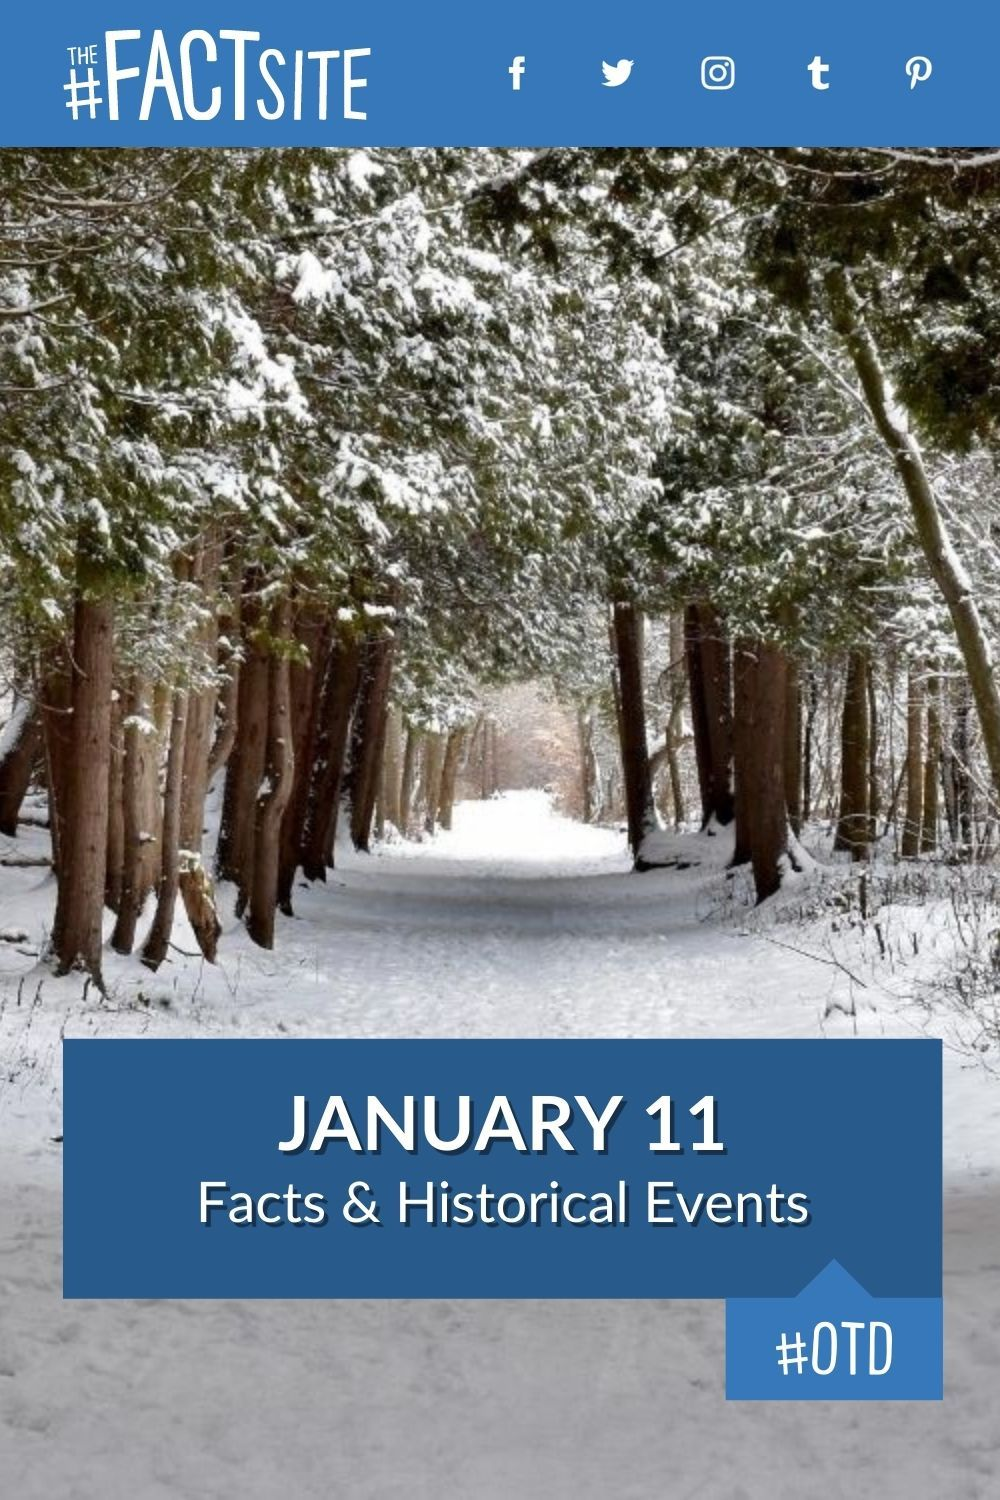 Facts & Historic Events That Happened on January 11